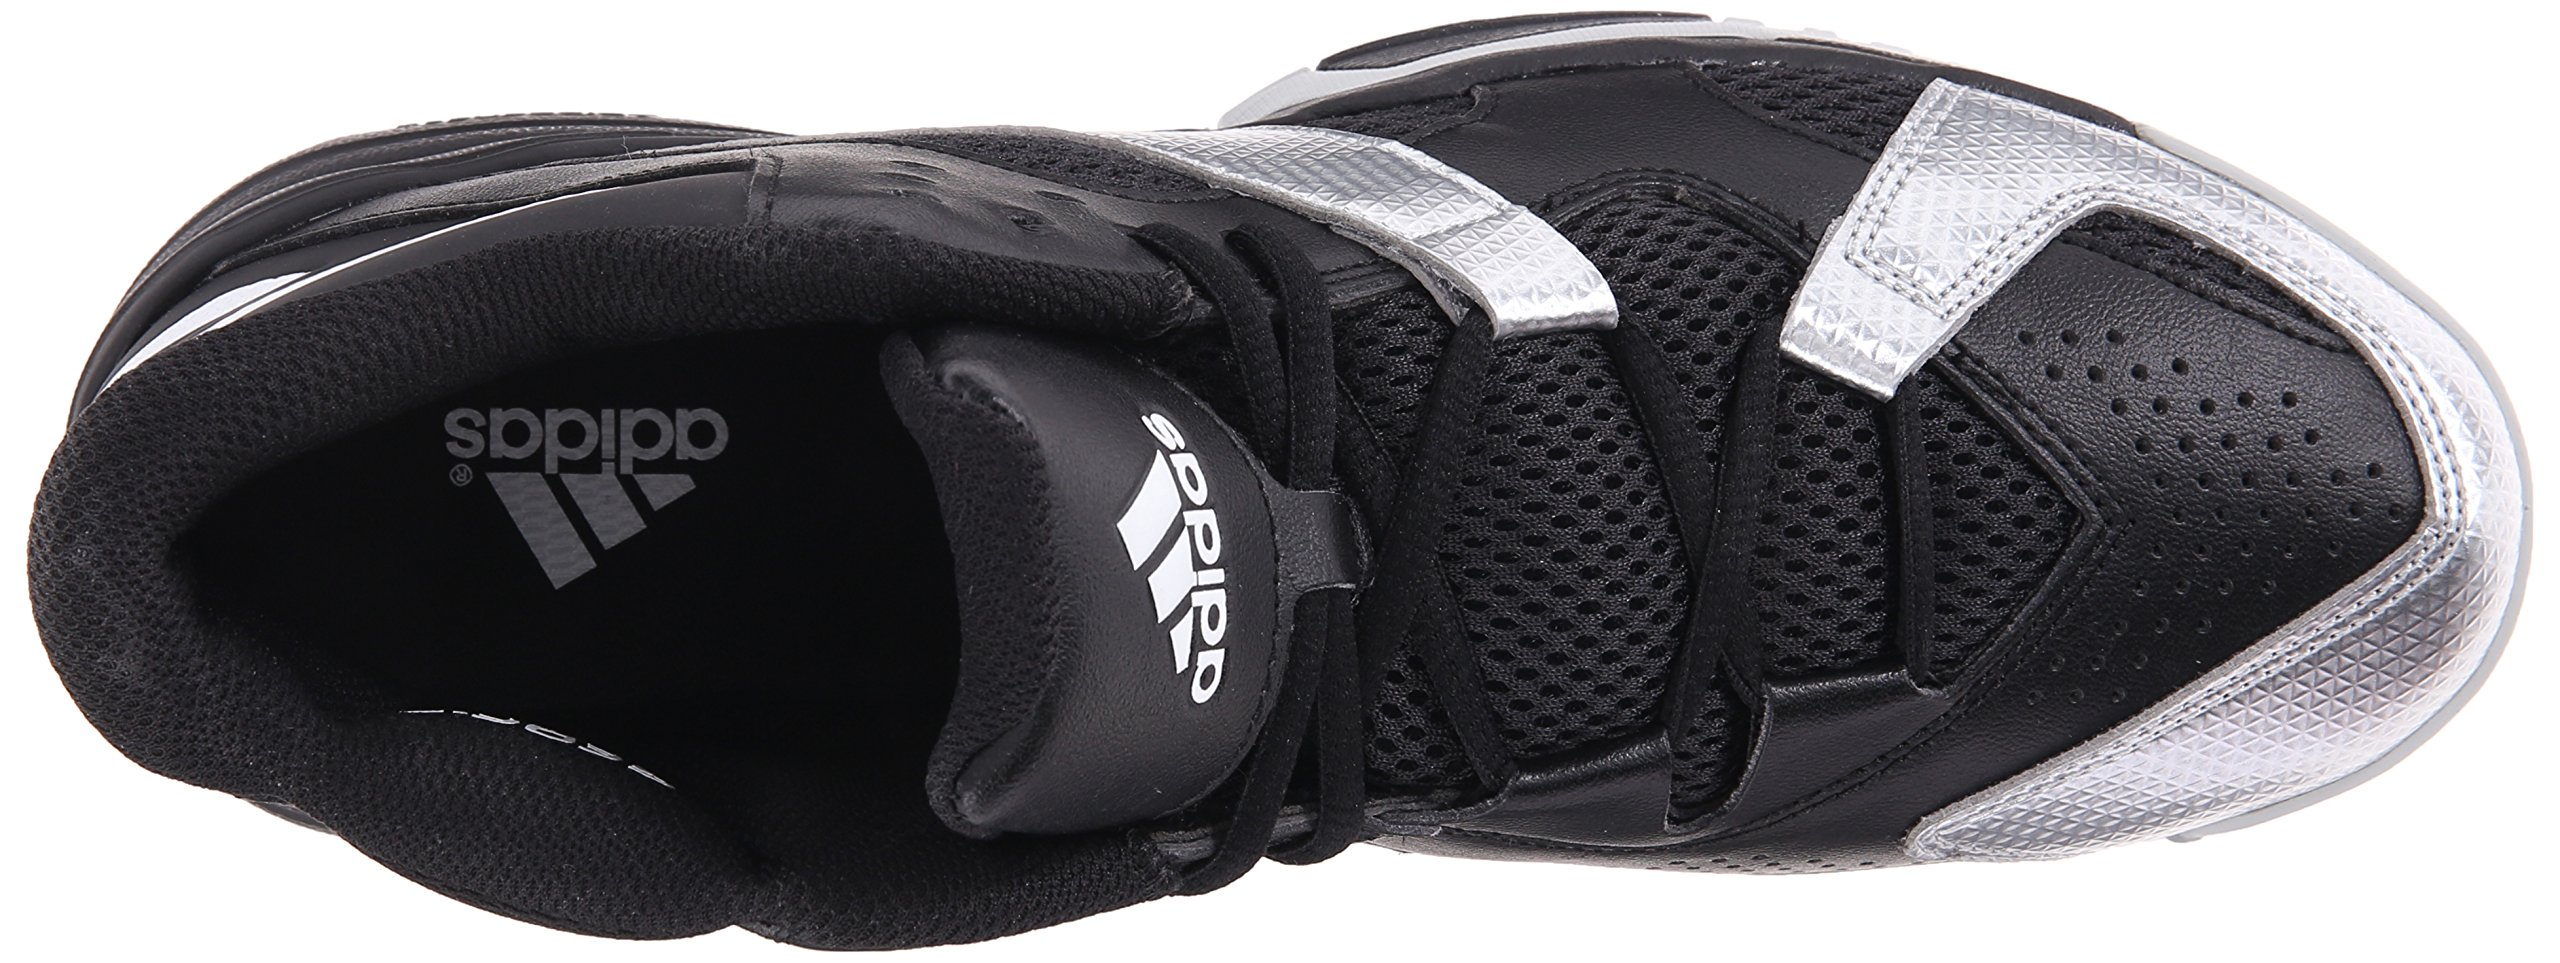 Performance Men S First Step Basketball Shoe Adidas